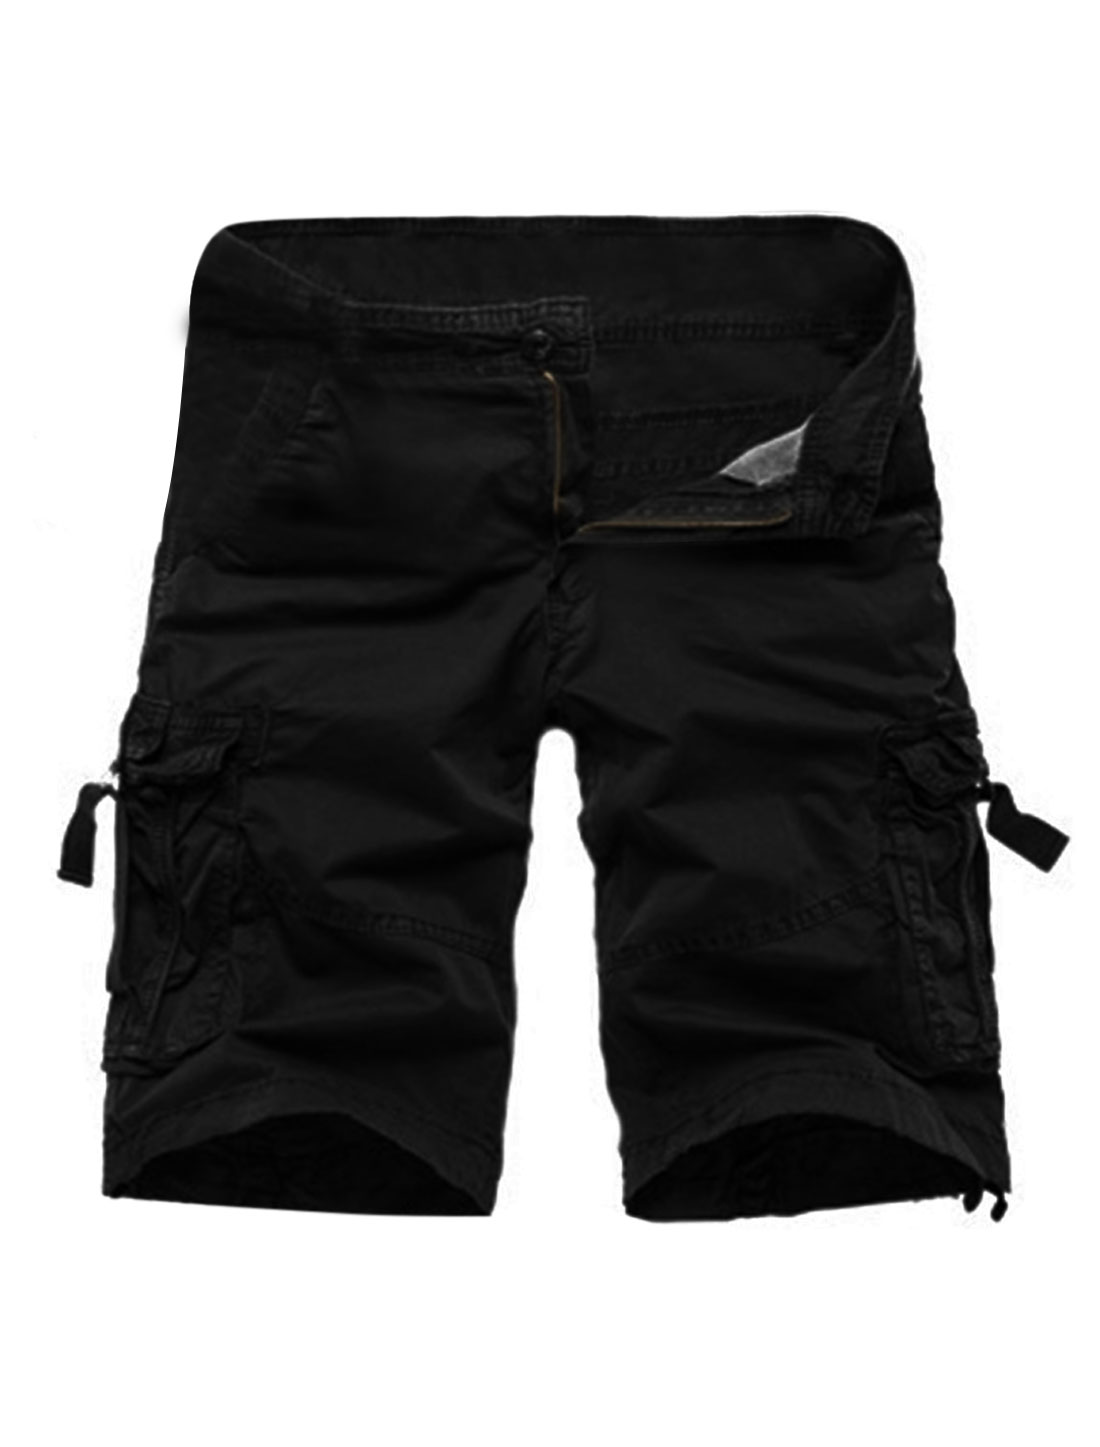 Man Natural Waist Functional Pockets Cargo Shorts Black W34